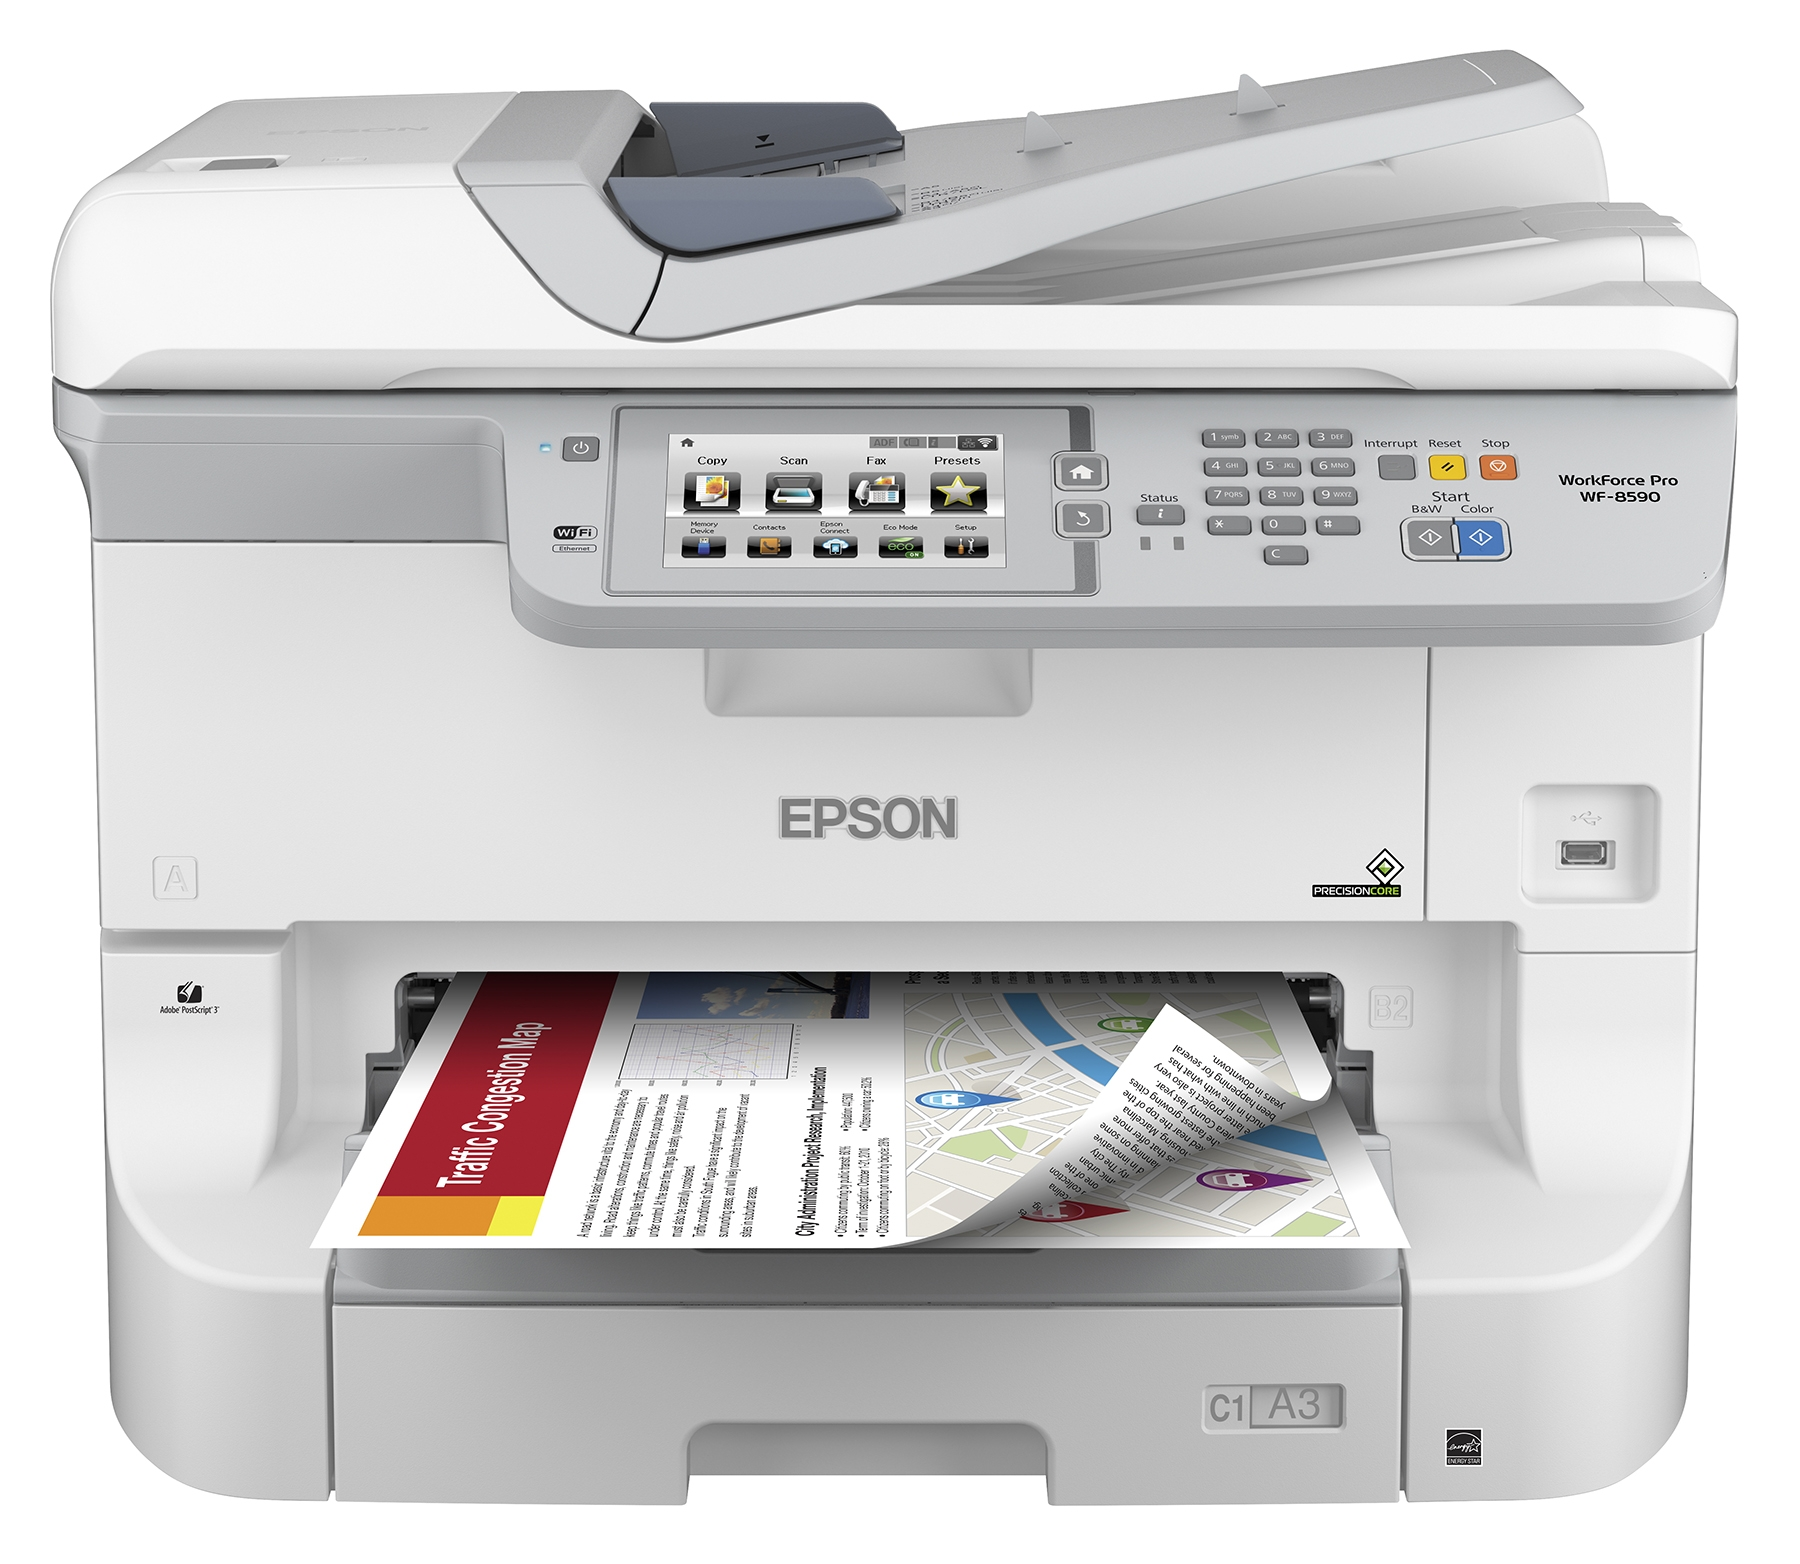 Nye Epson Introduces Heavy Duty A3 Color Workgroup Printer and MFP TH-97